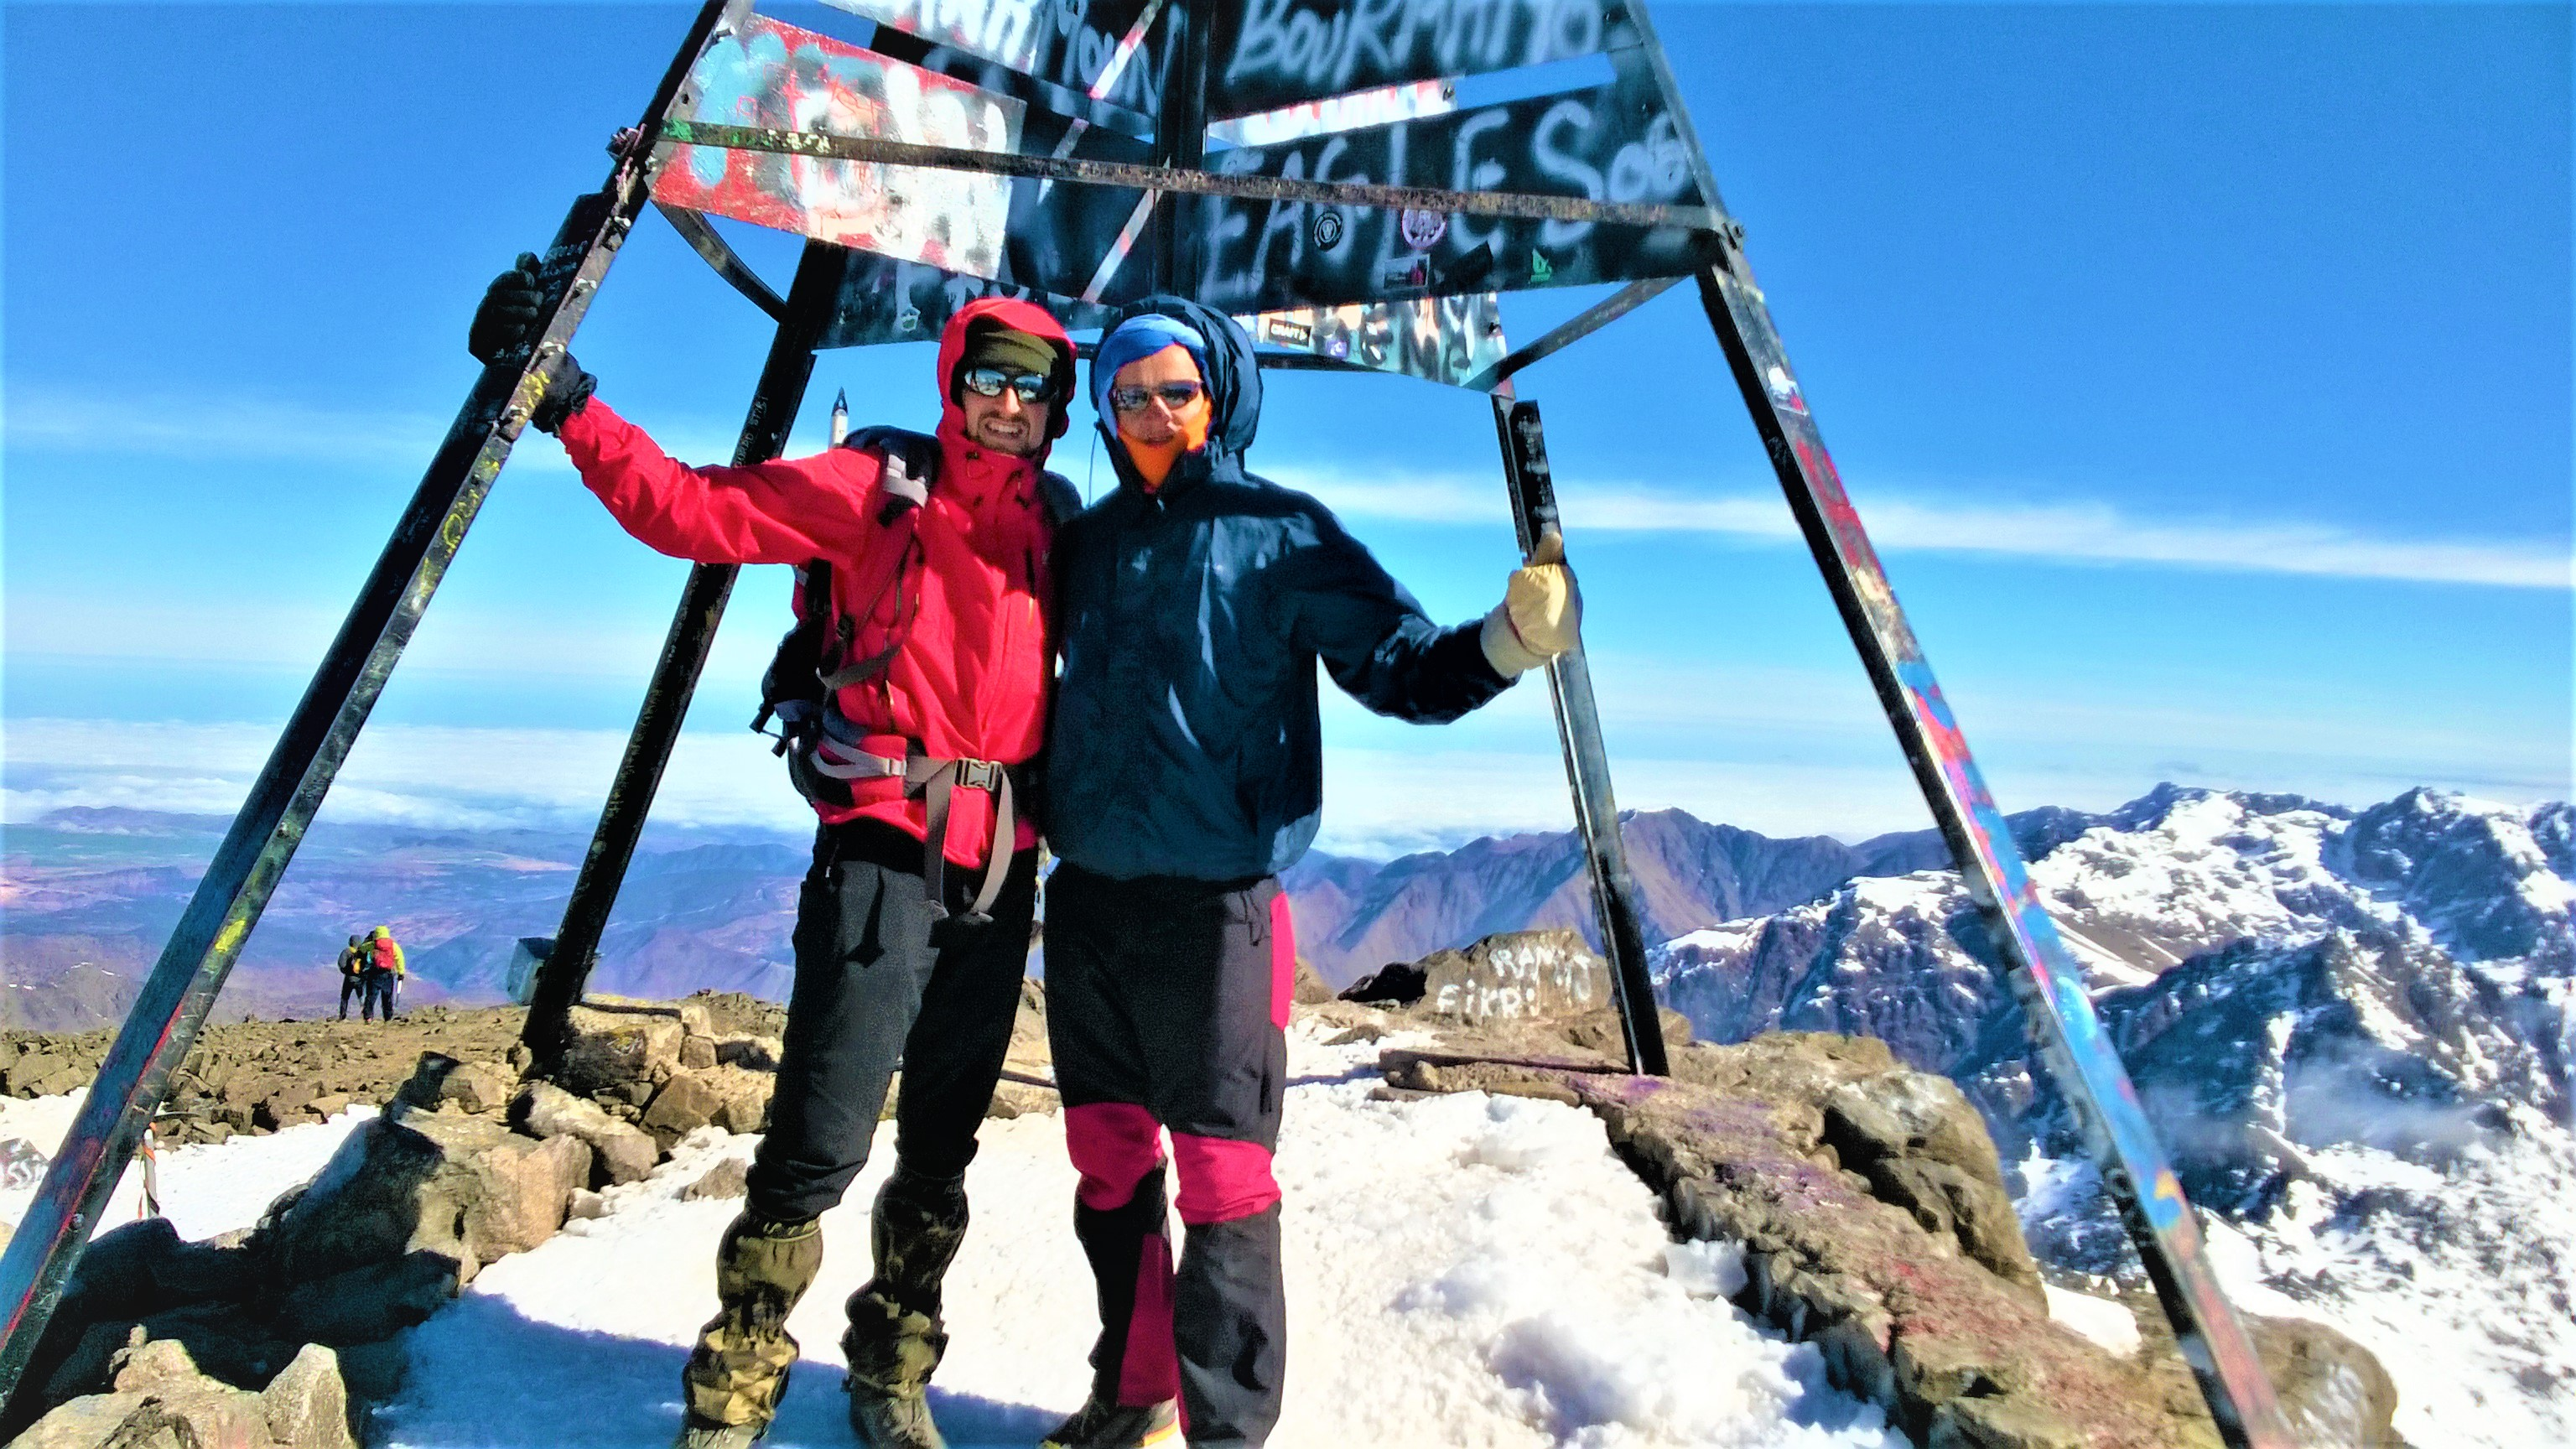 Toubkal Aremd